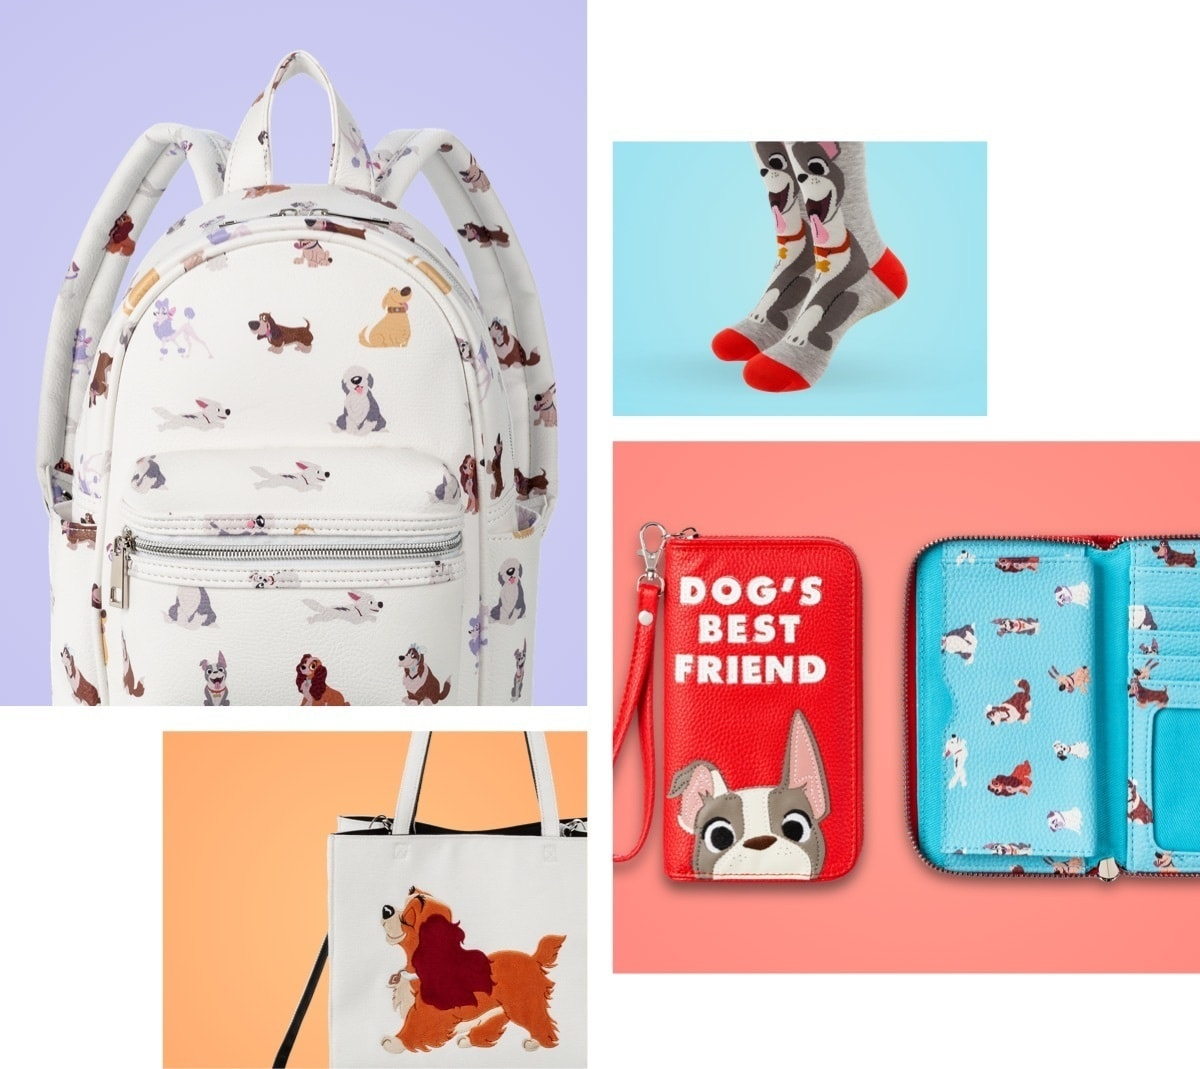 Accessories featuring beloved Disney dogs, including socks, a mini backpack, a wallet, and a tote-bag